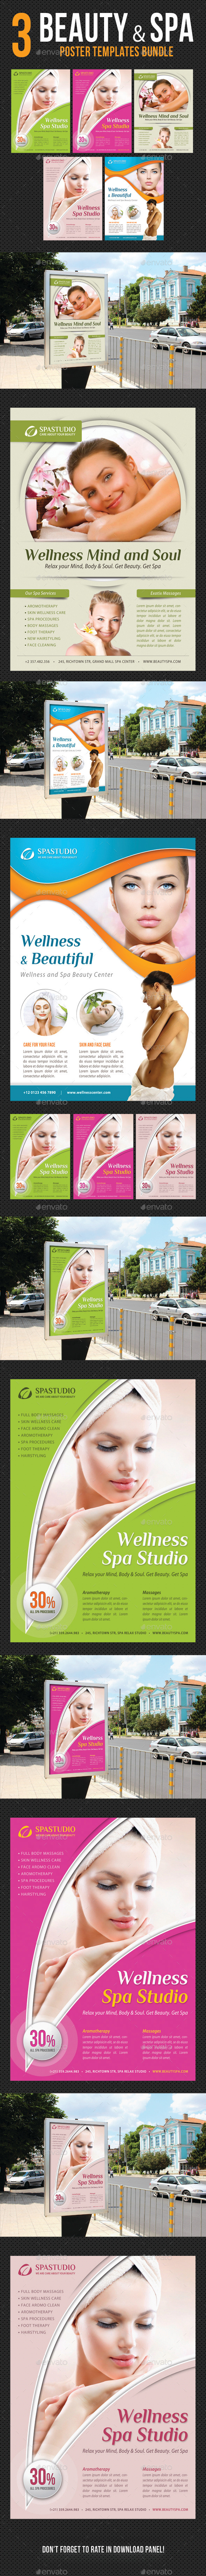 3 in 1 Beauty and Spa Poster Poster Bundle 02 - Signage Print Templates